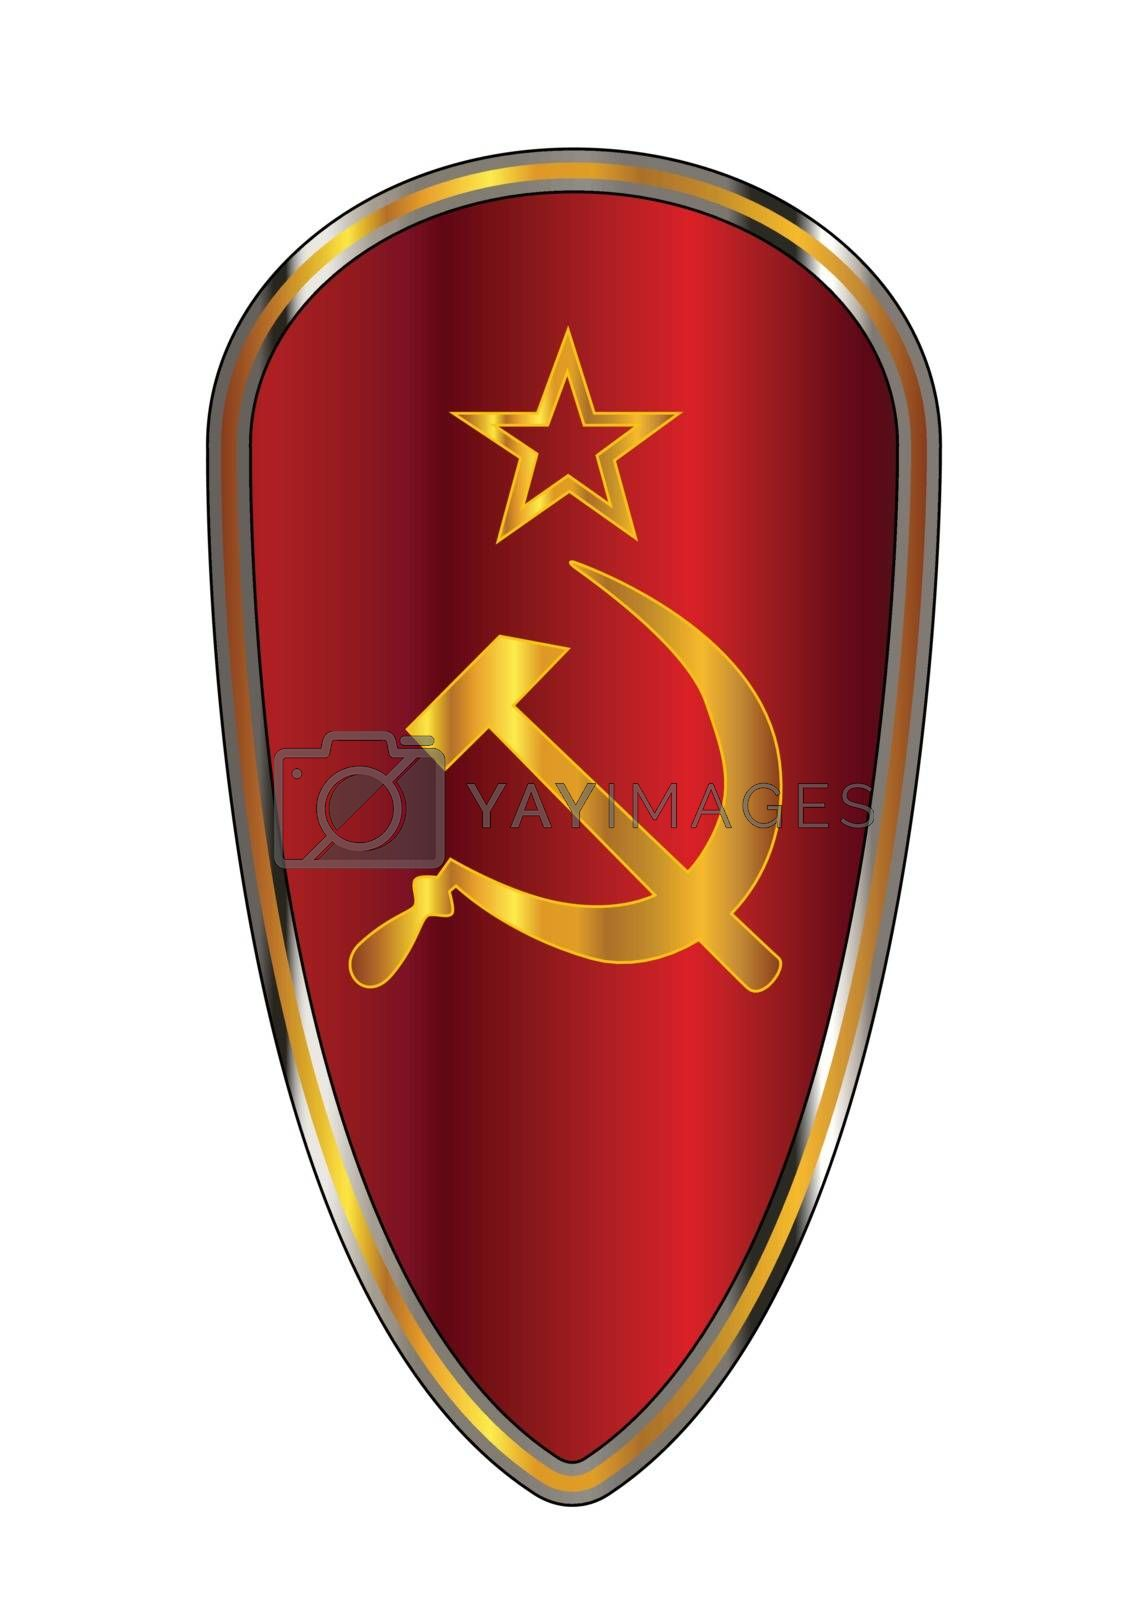 The traditional knights shield associated with a crusader with the hammer and sickle emblem of the Soviet Union